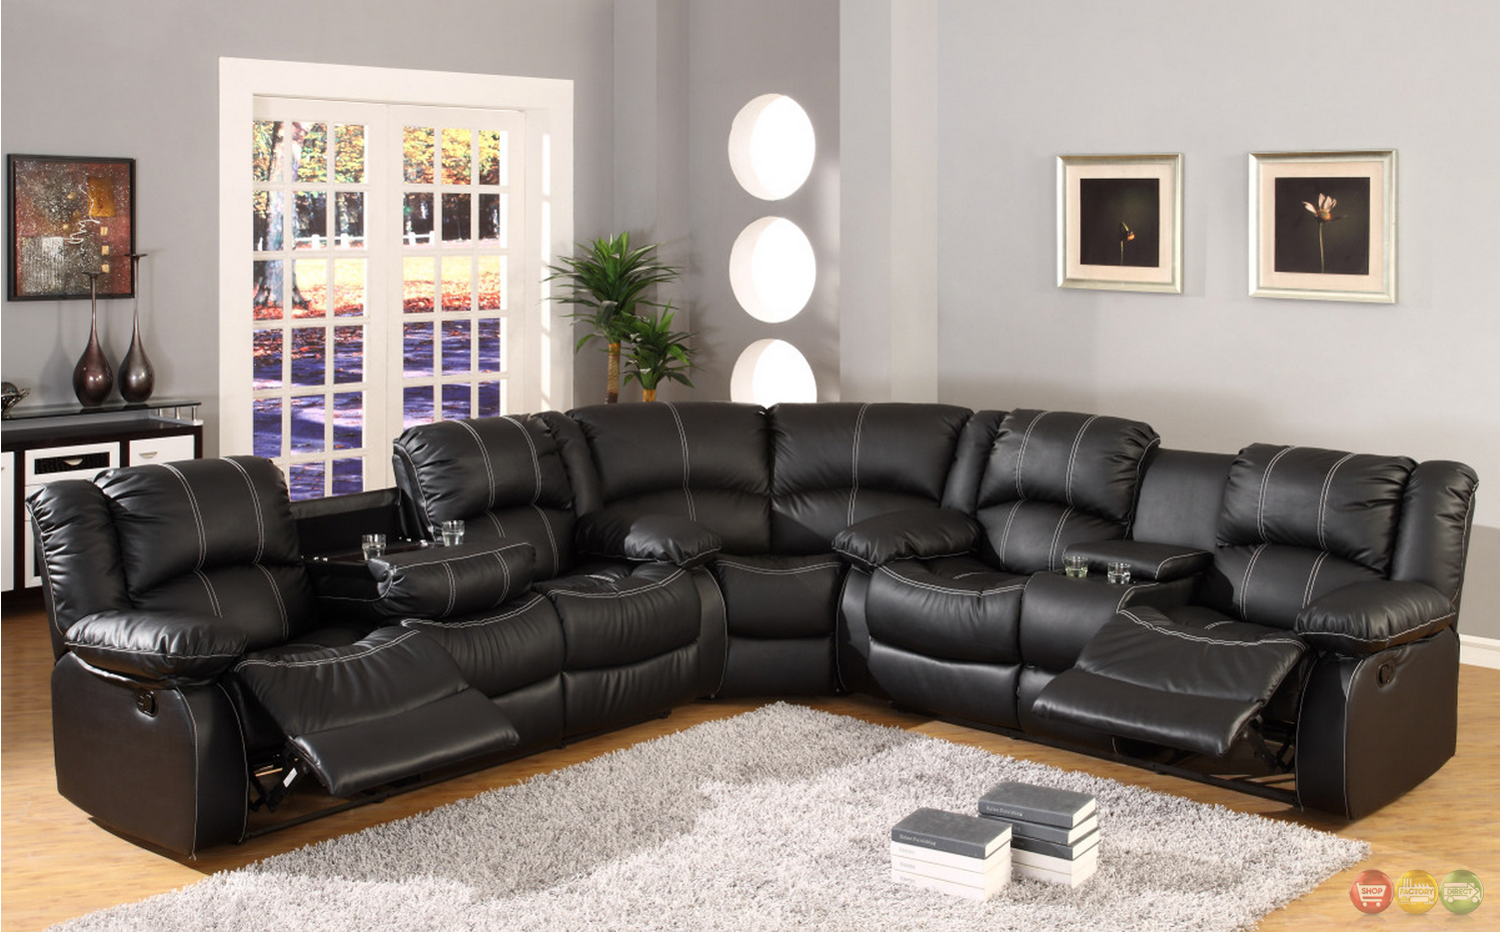 black faux leather reclining motion sectional sofa w/ storage